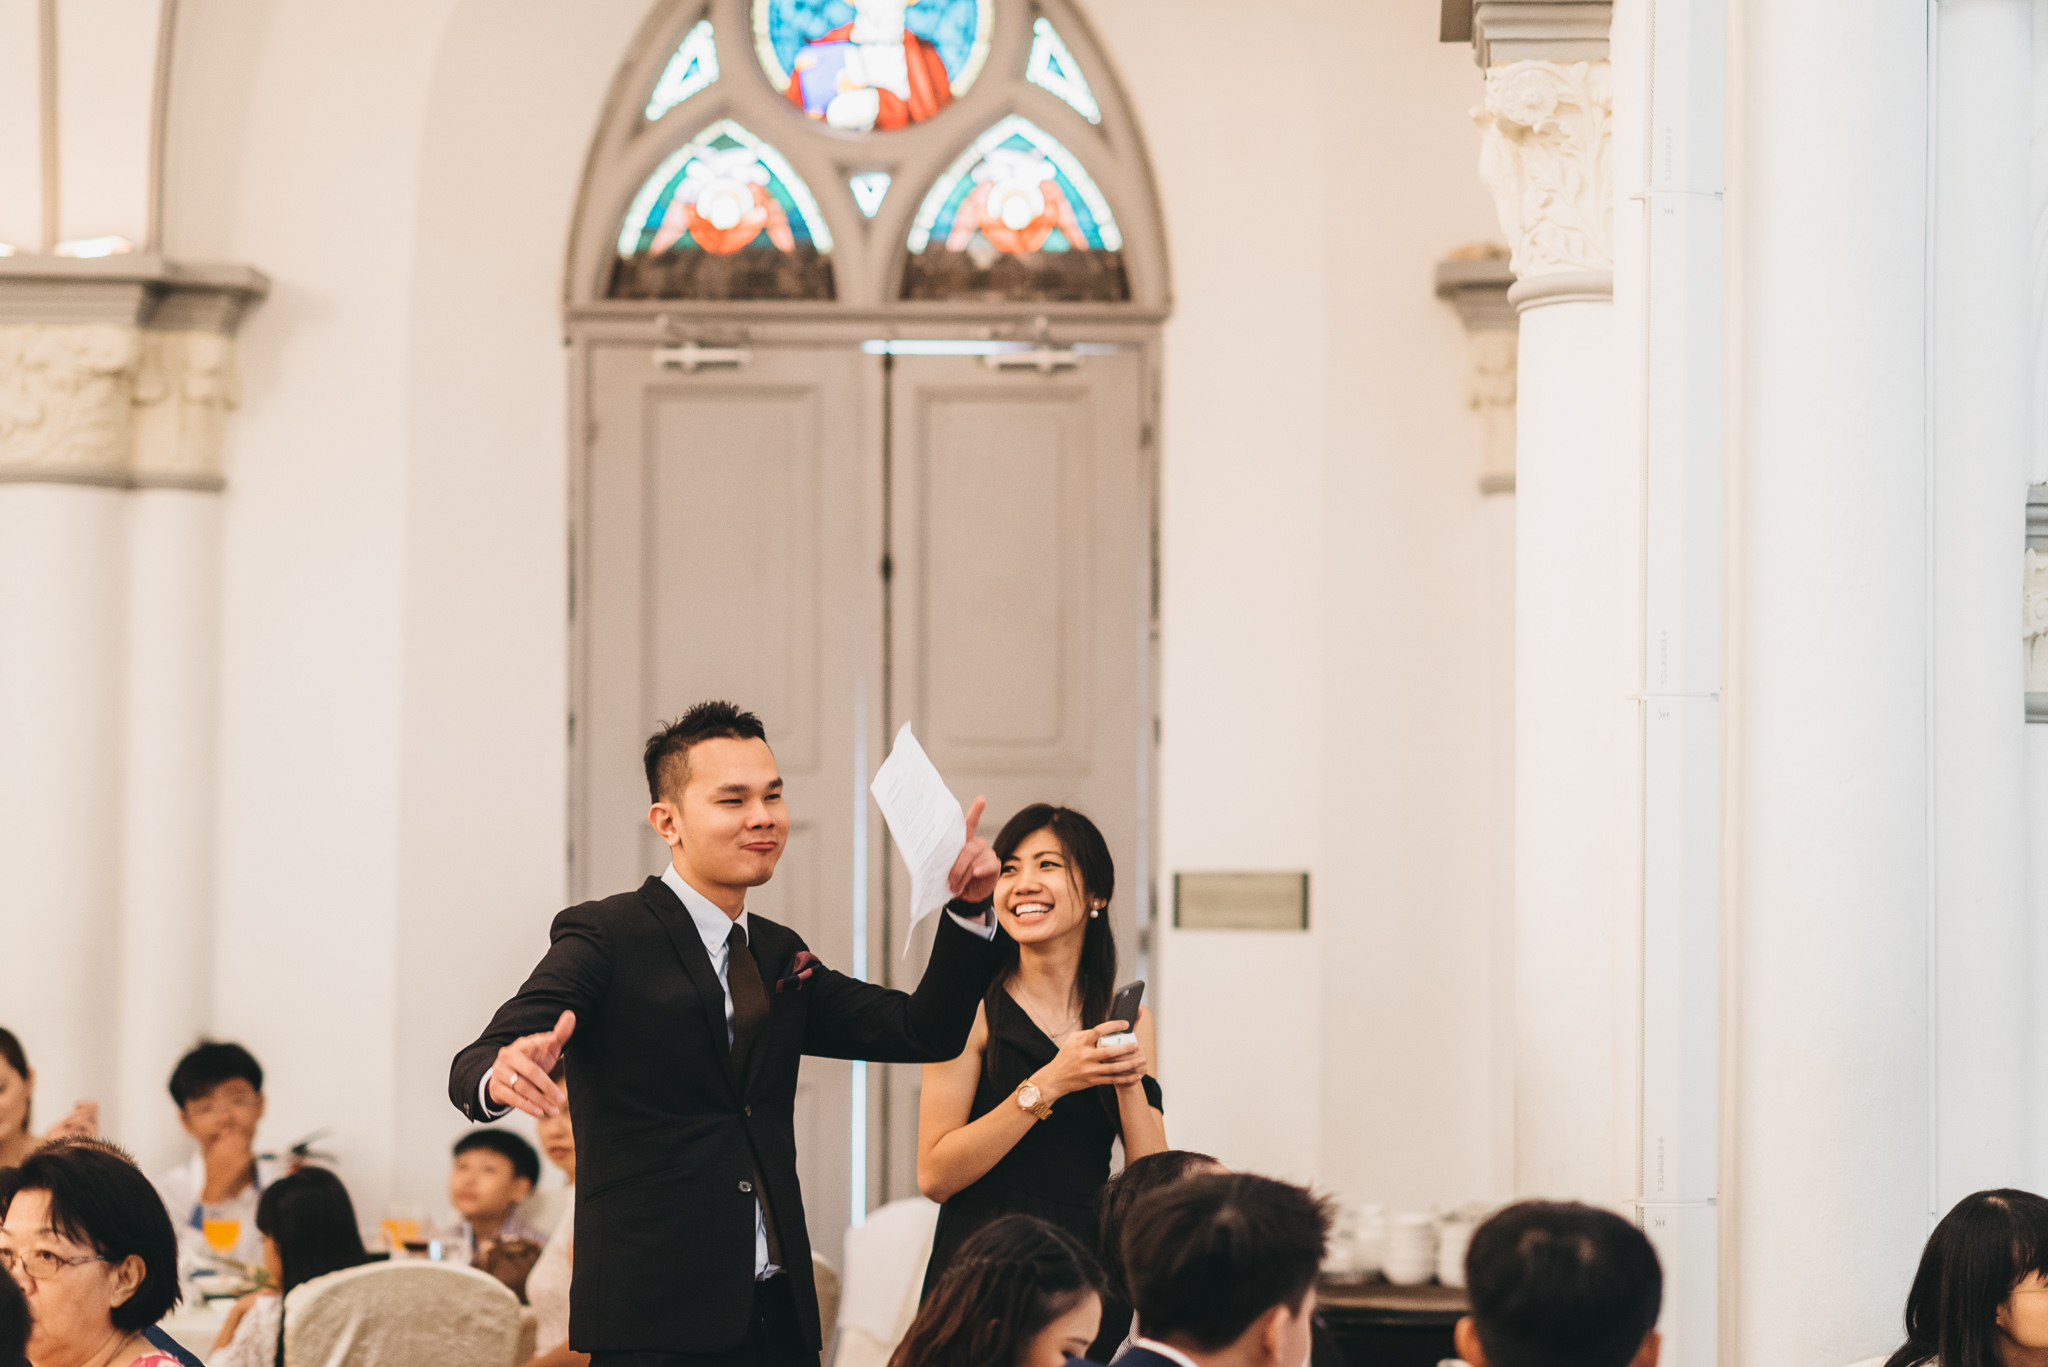 Alice & Wei Bang Wedding Day Highlights (resized for sharing) - 114.jpg